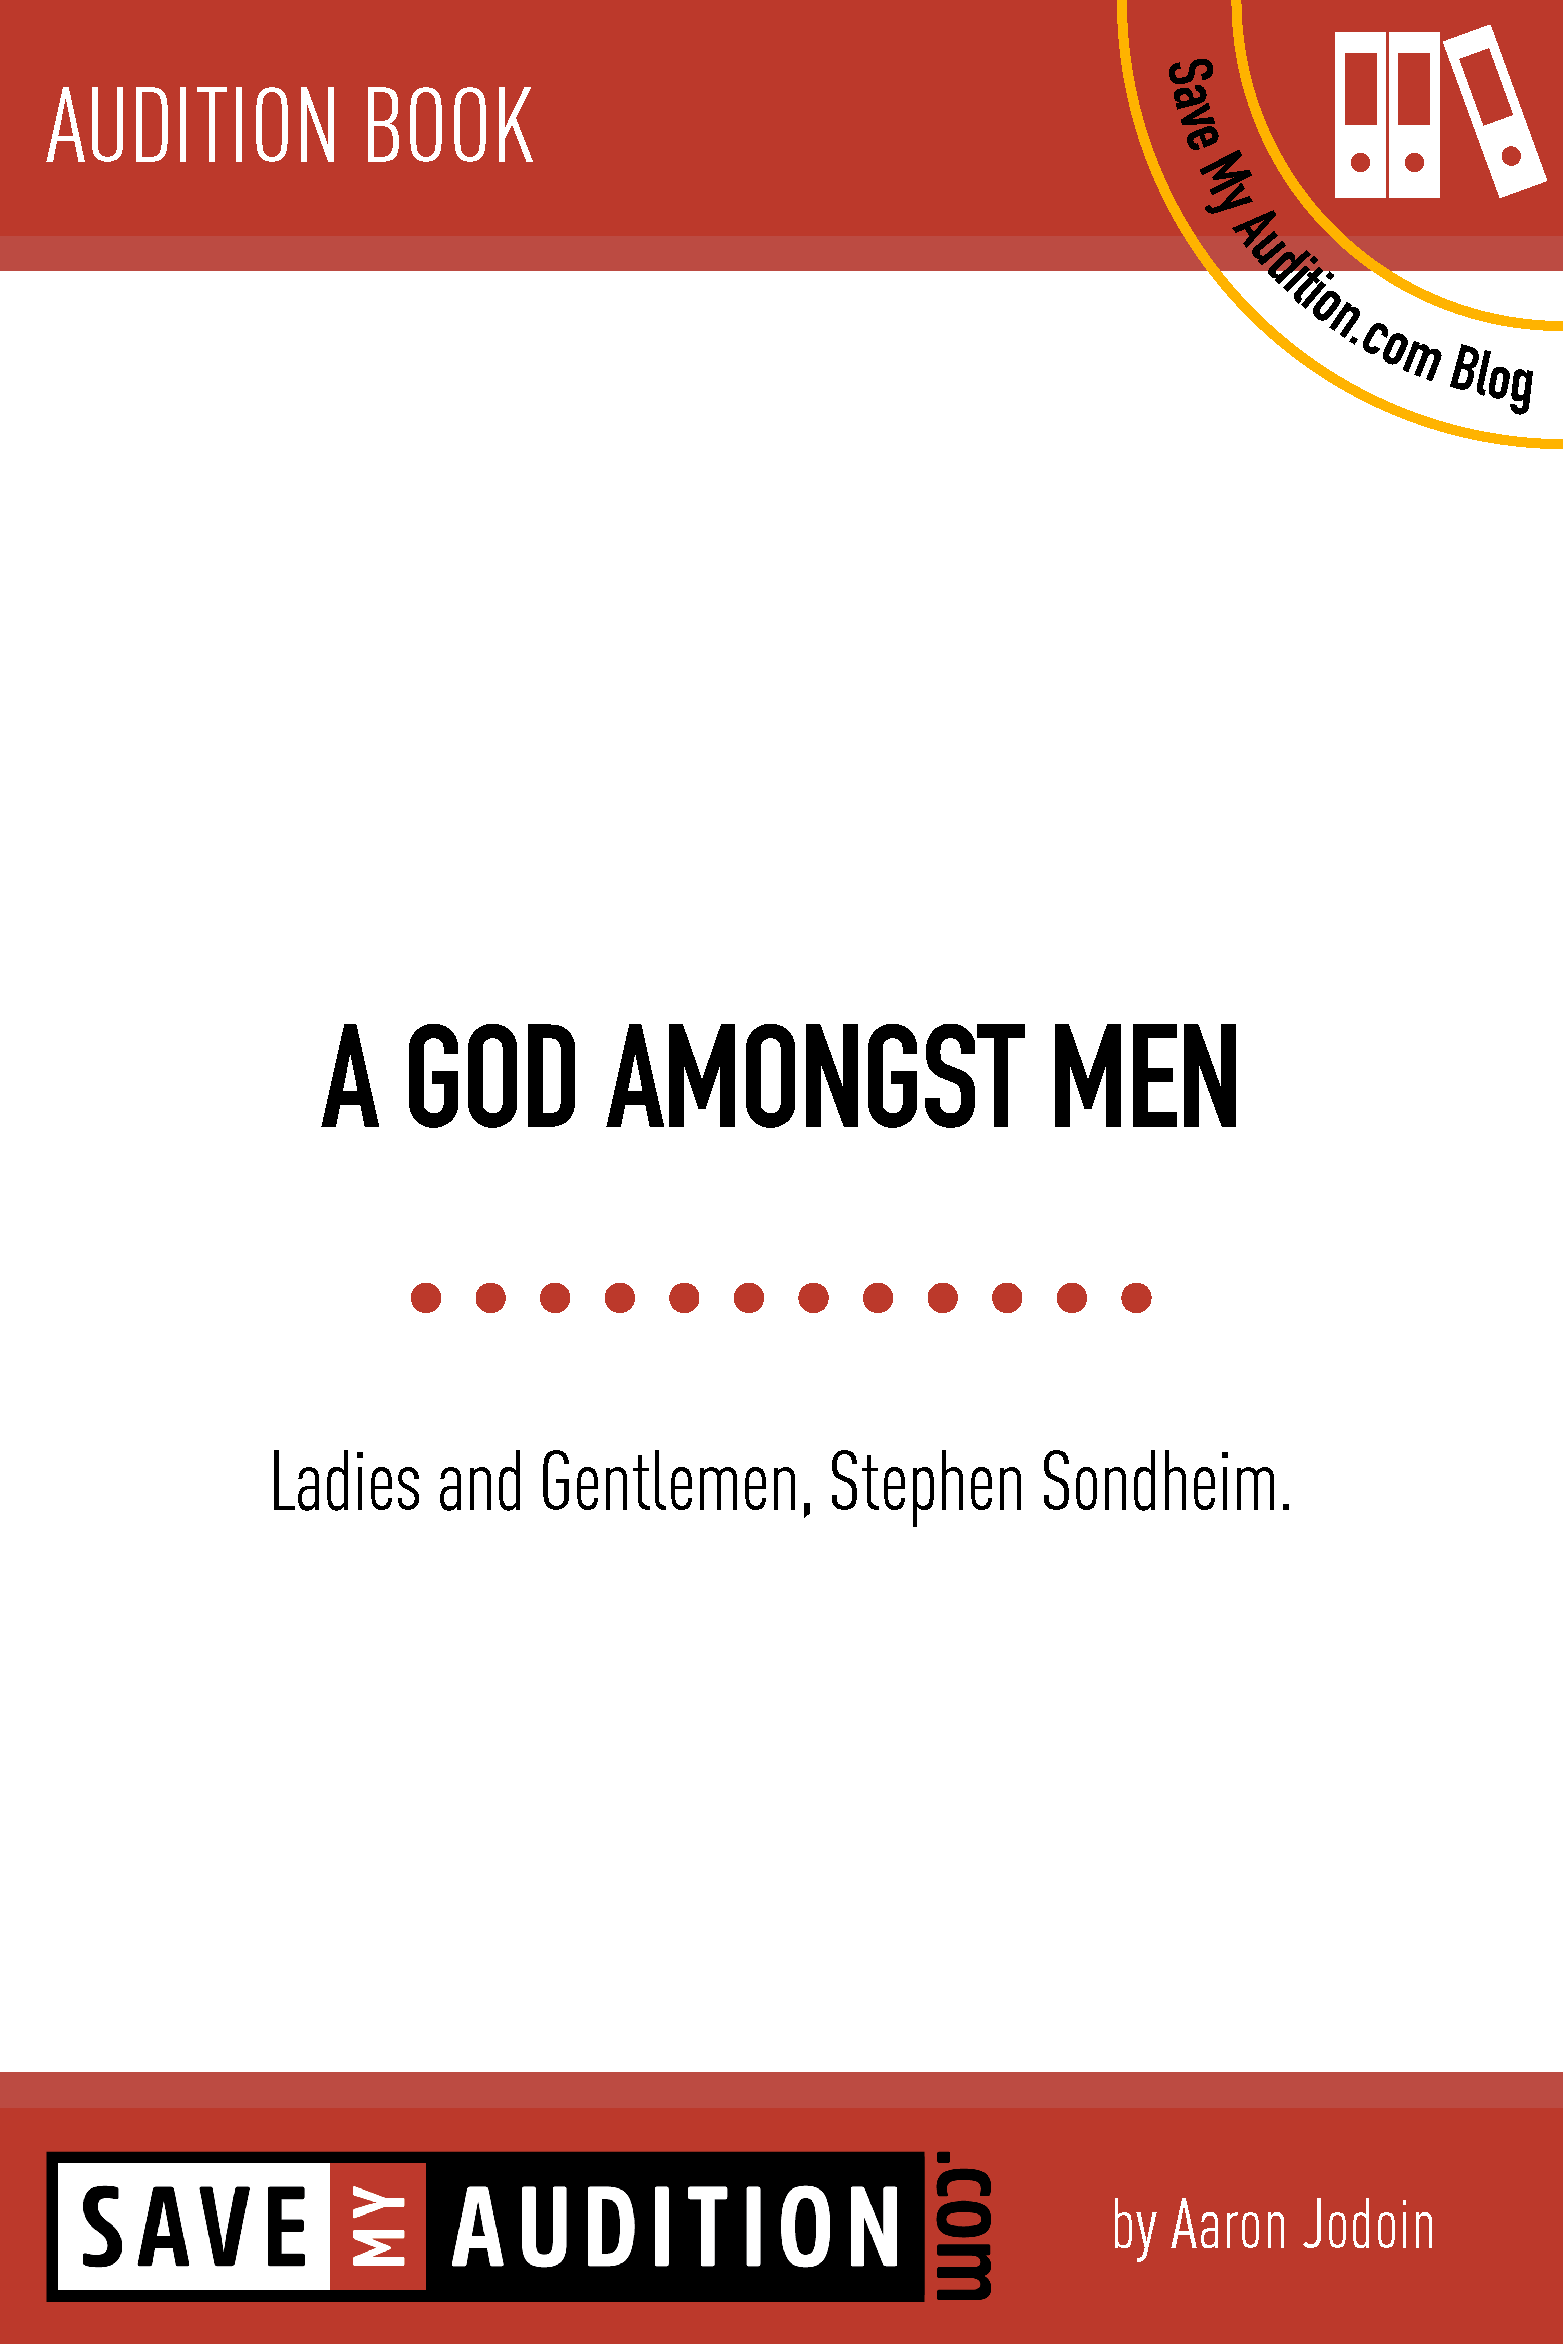 A God Amongst Men-01.png